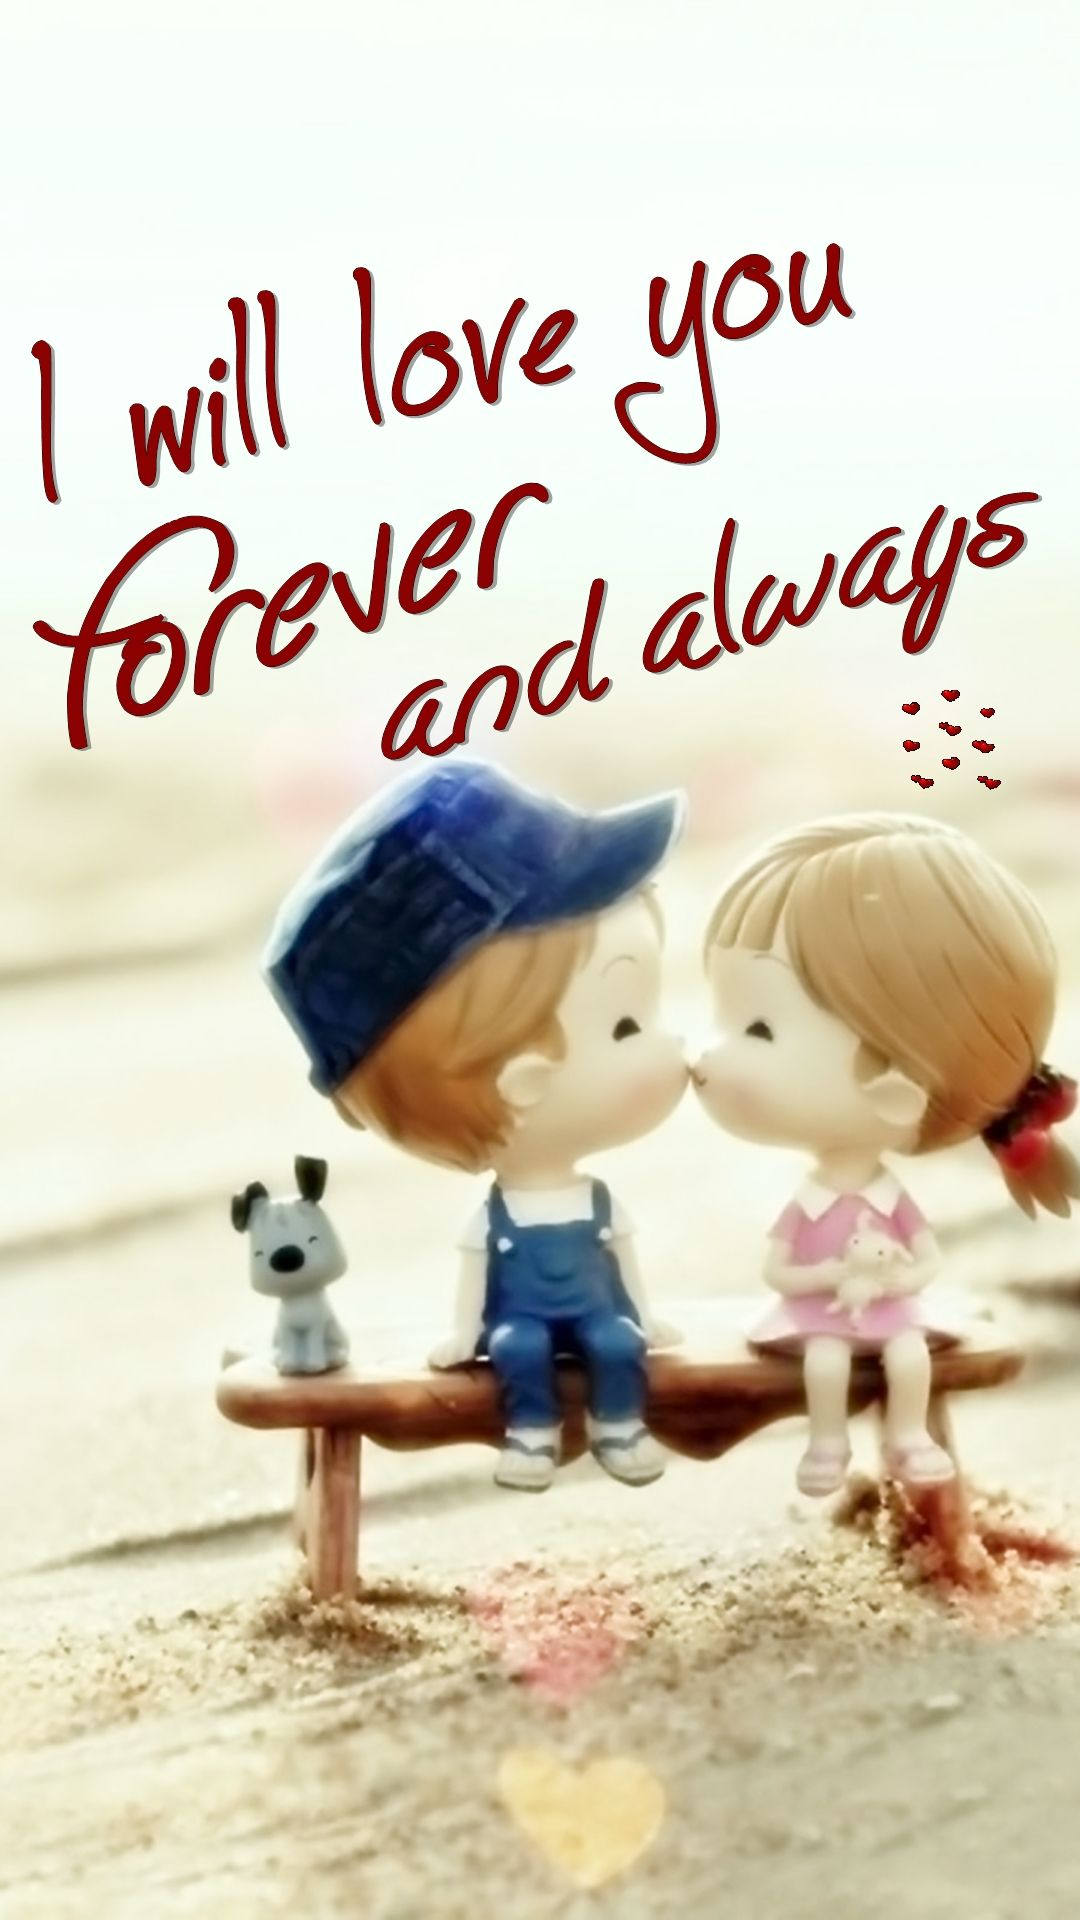 Tap image for more love wallpapers! Love you forever - @mobile9 iPhone 6 wallpapers iPhone 7 ...